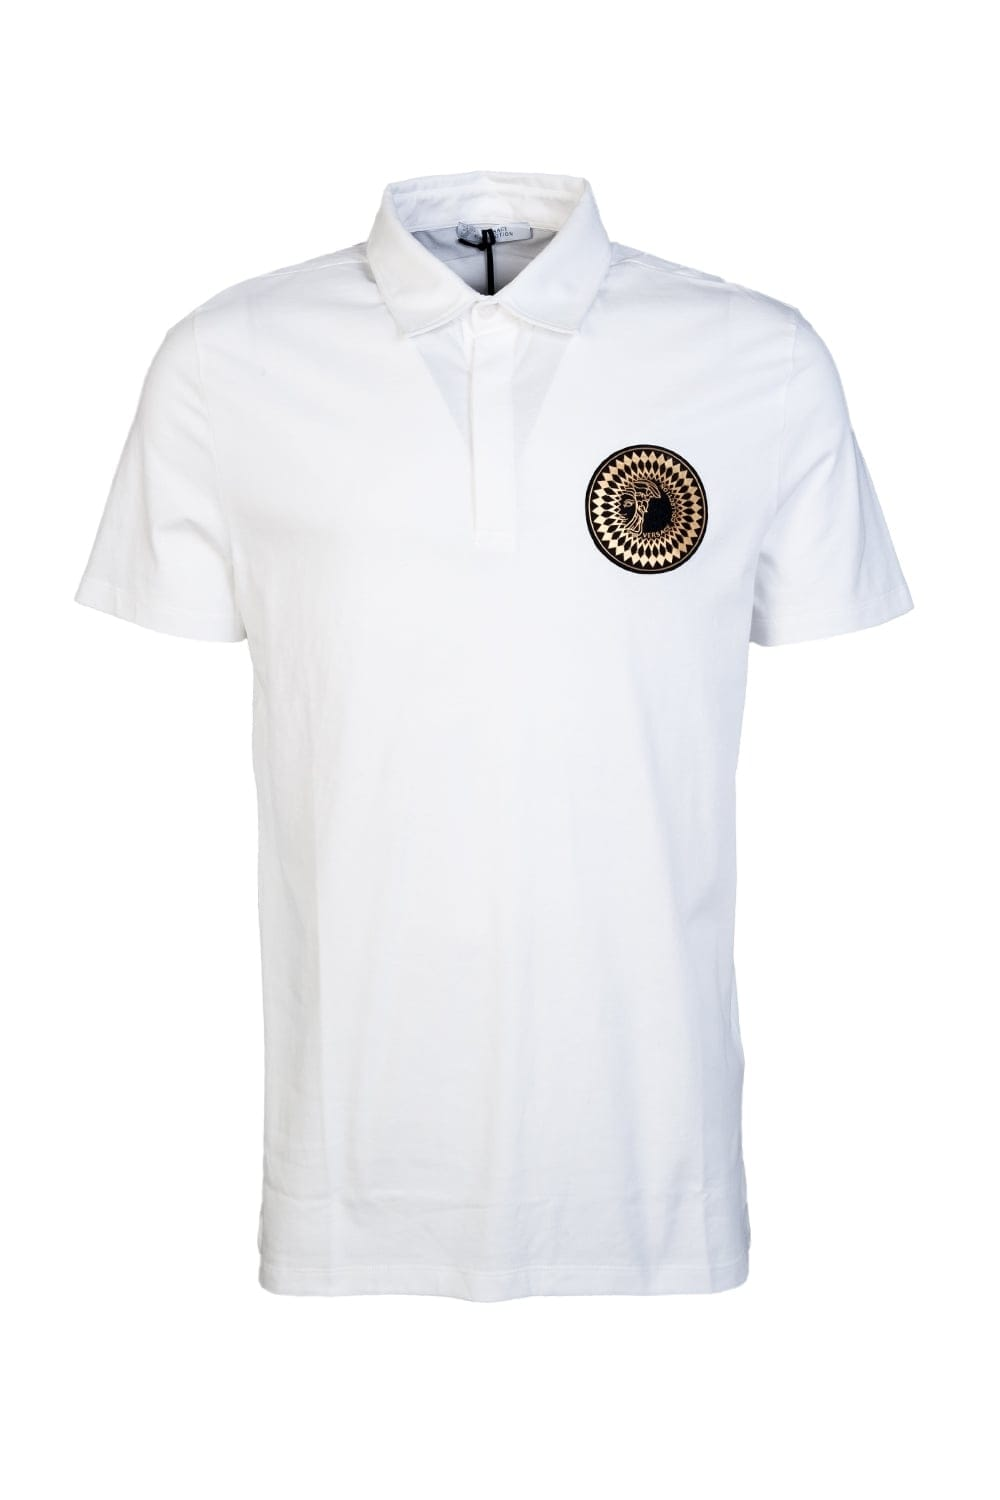 versace polo top